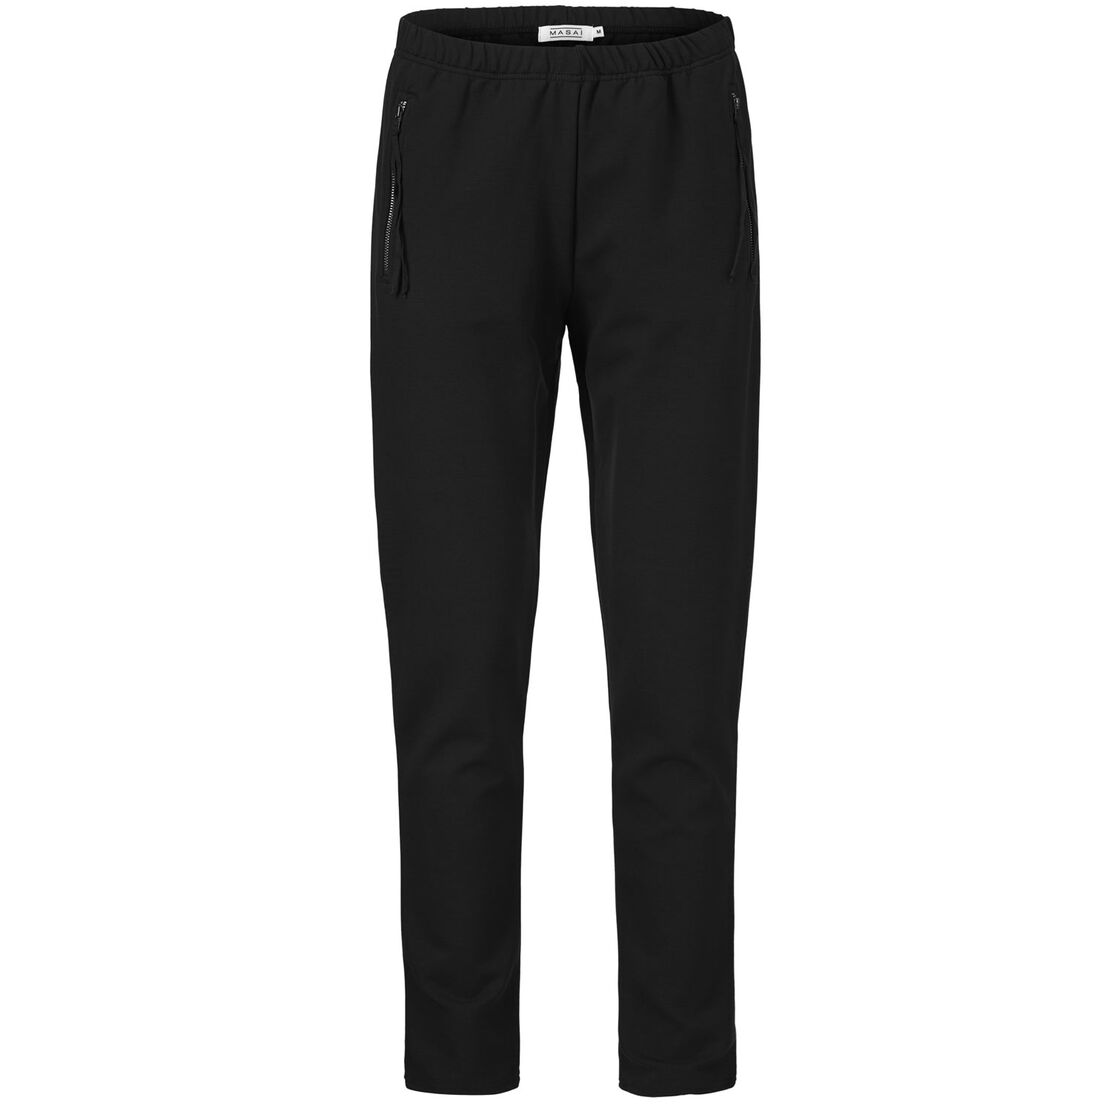 PERRY JERSEY TROUSERS, Black, hi-res